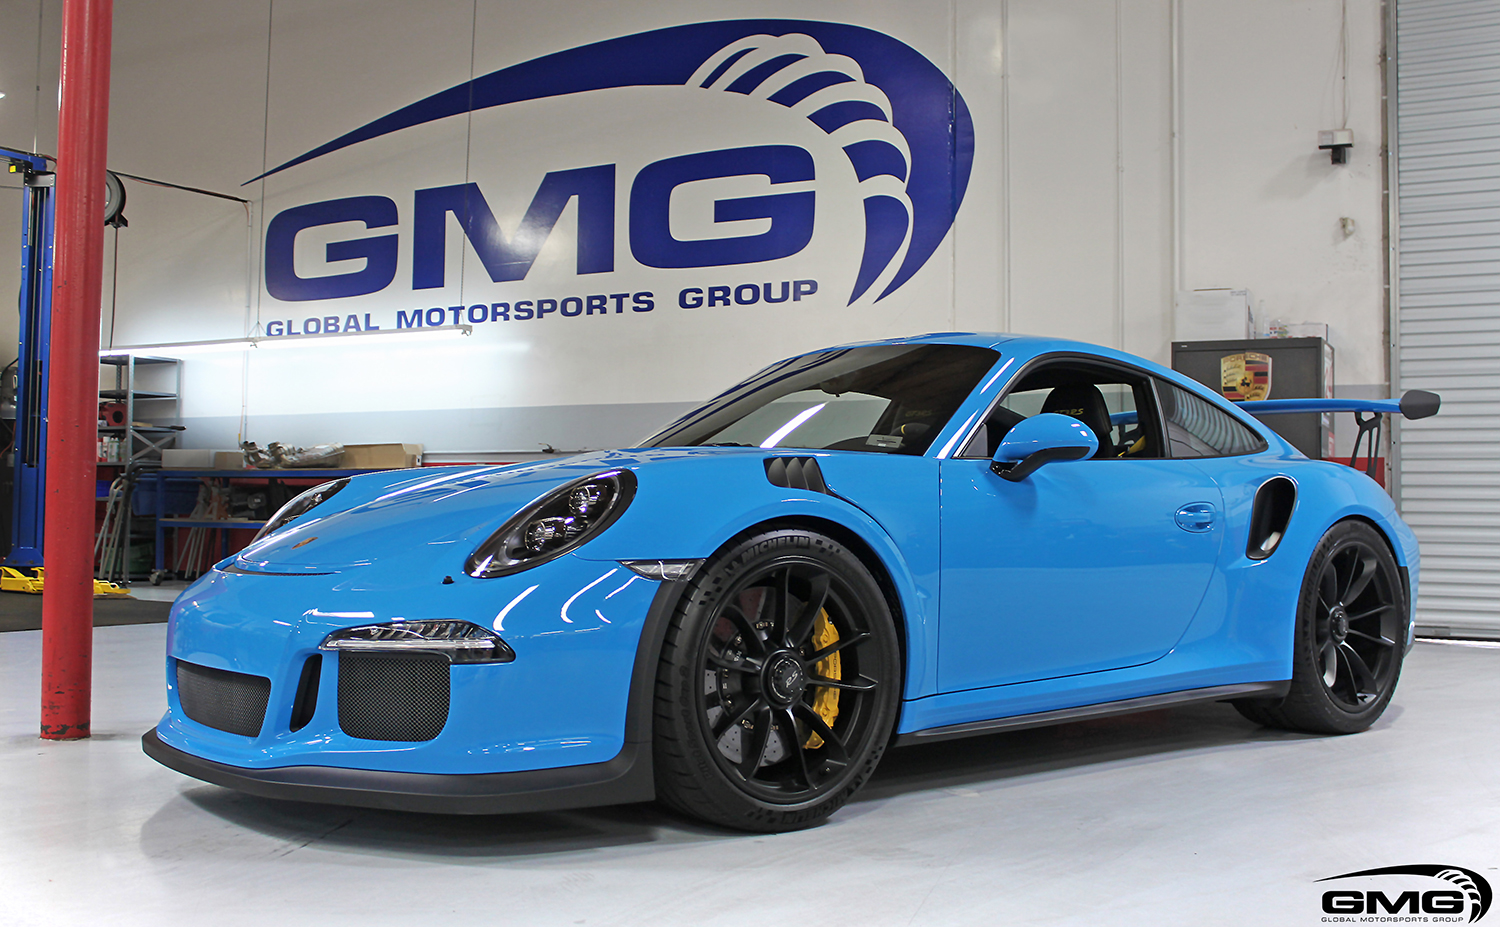 porsche boxster blue with Mexico Blue Porsche Gt3rs on Search porsche together with Historic Week 2012 Monterey Penninsula in addition 654447 My Aqua Blue Metallic Carrera Red 12 Spyder Tale Of A Custom Order furthermore First Drive 2018 718 Porsche Cayman And Boxster Gts also Porsche 718 Cayman.